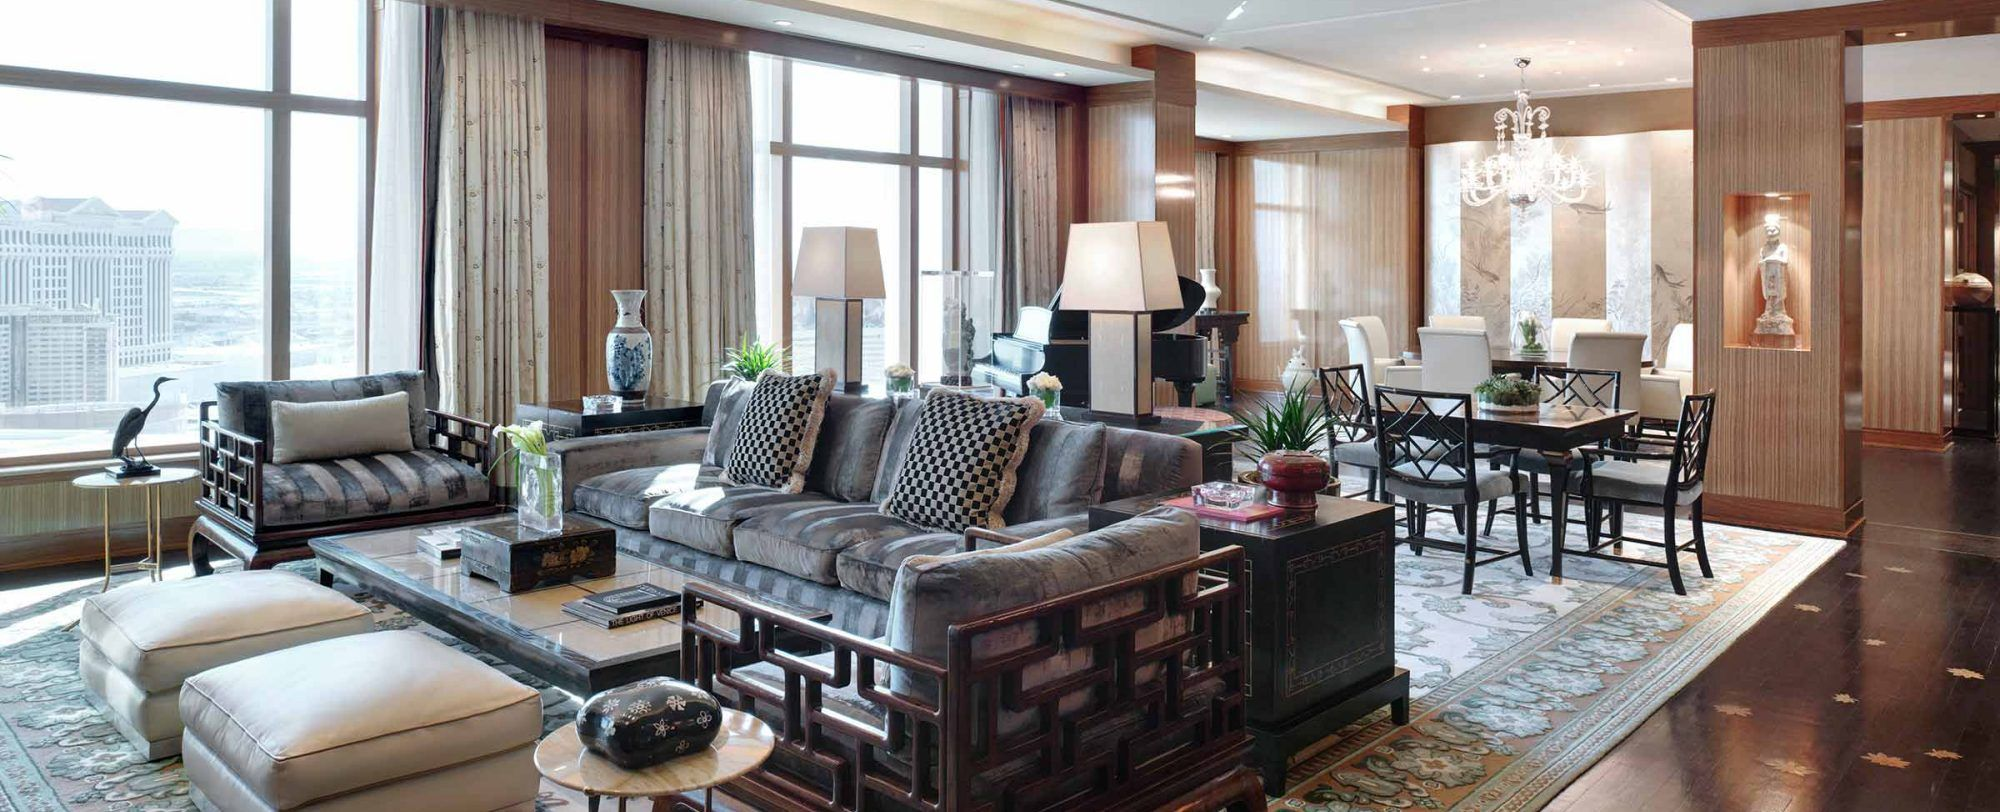 The Chairman Suite In The Venetian Is 7,800 Square Feet Of Unmatched  Elegance. This Luxury Suite Is Available With Either 3 Or 4 Bedrooms.